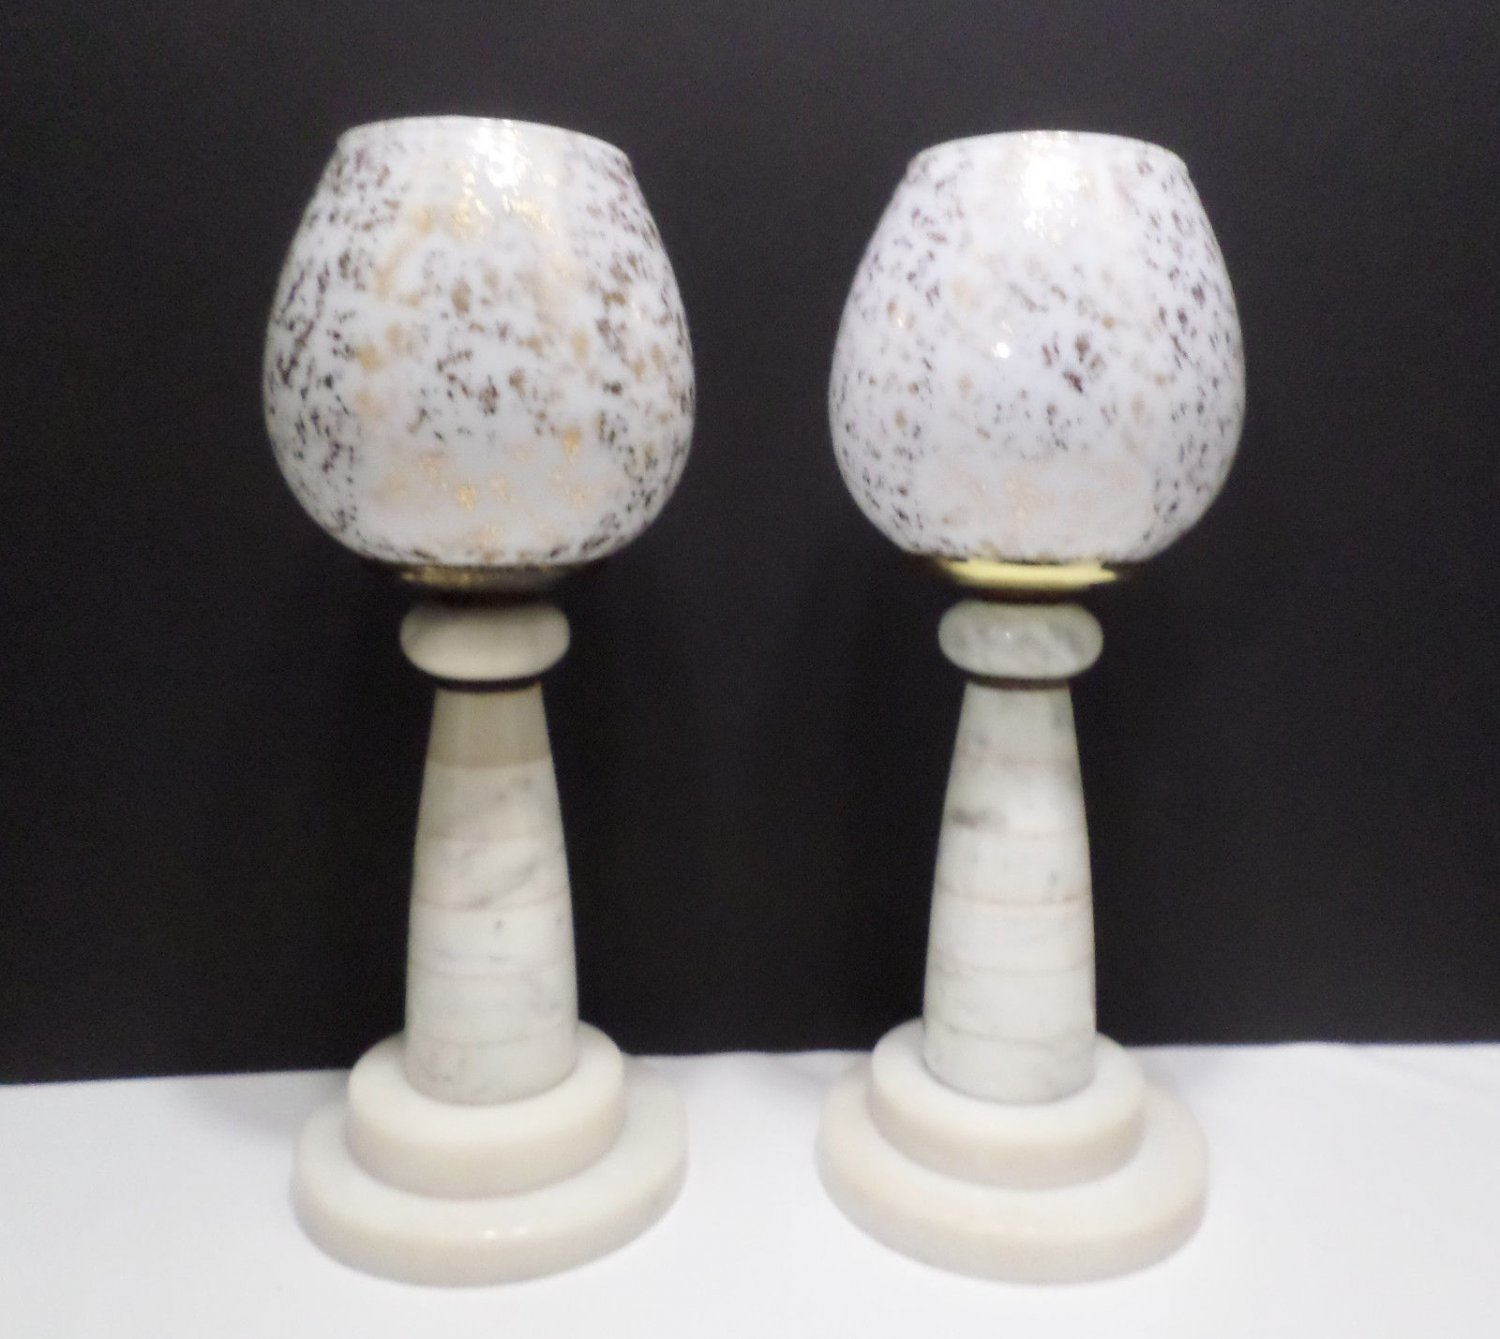 Two Candle Holder Lamps Marble Base White Glass Candle Holders